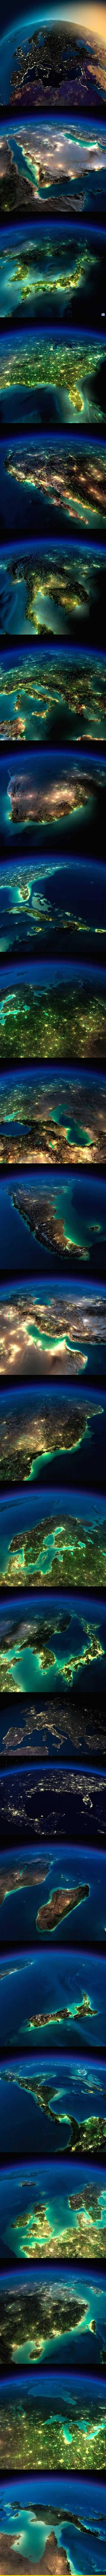 Illuminated Earth as seen from space...